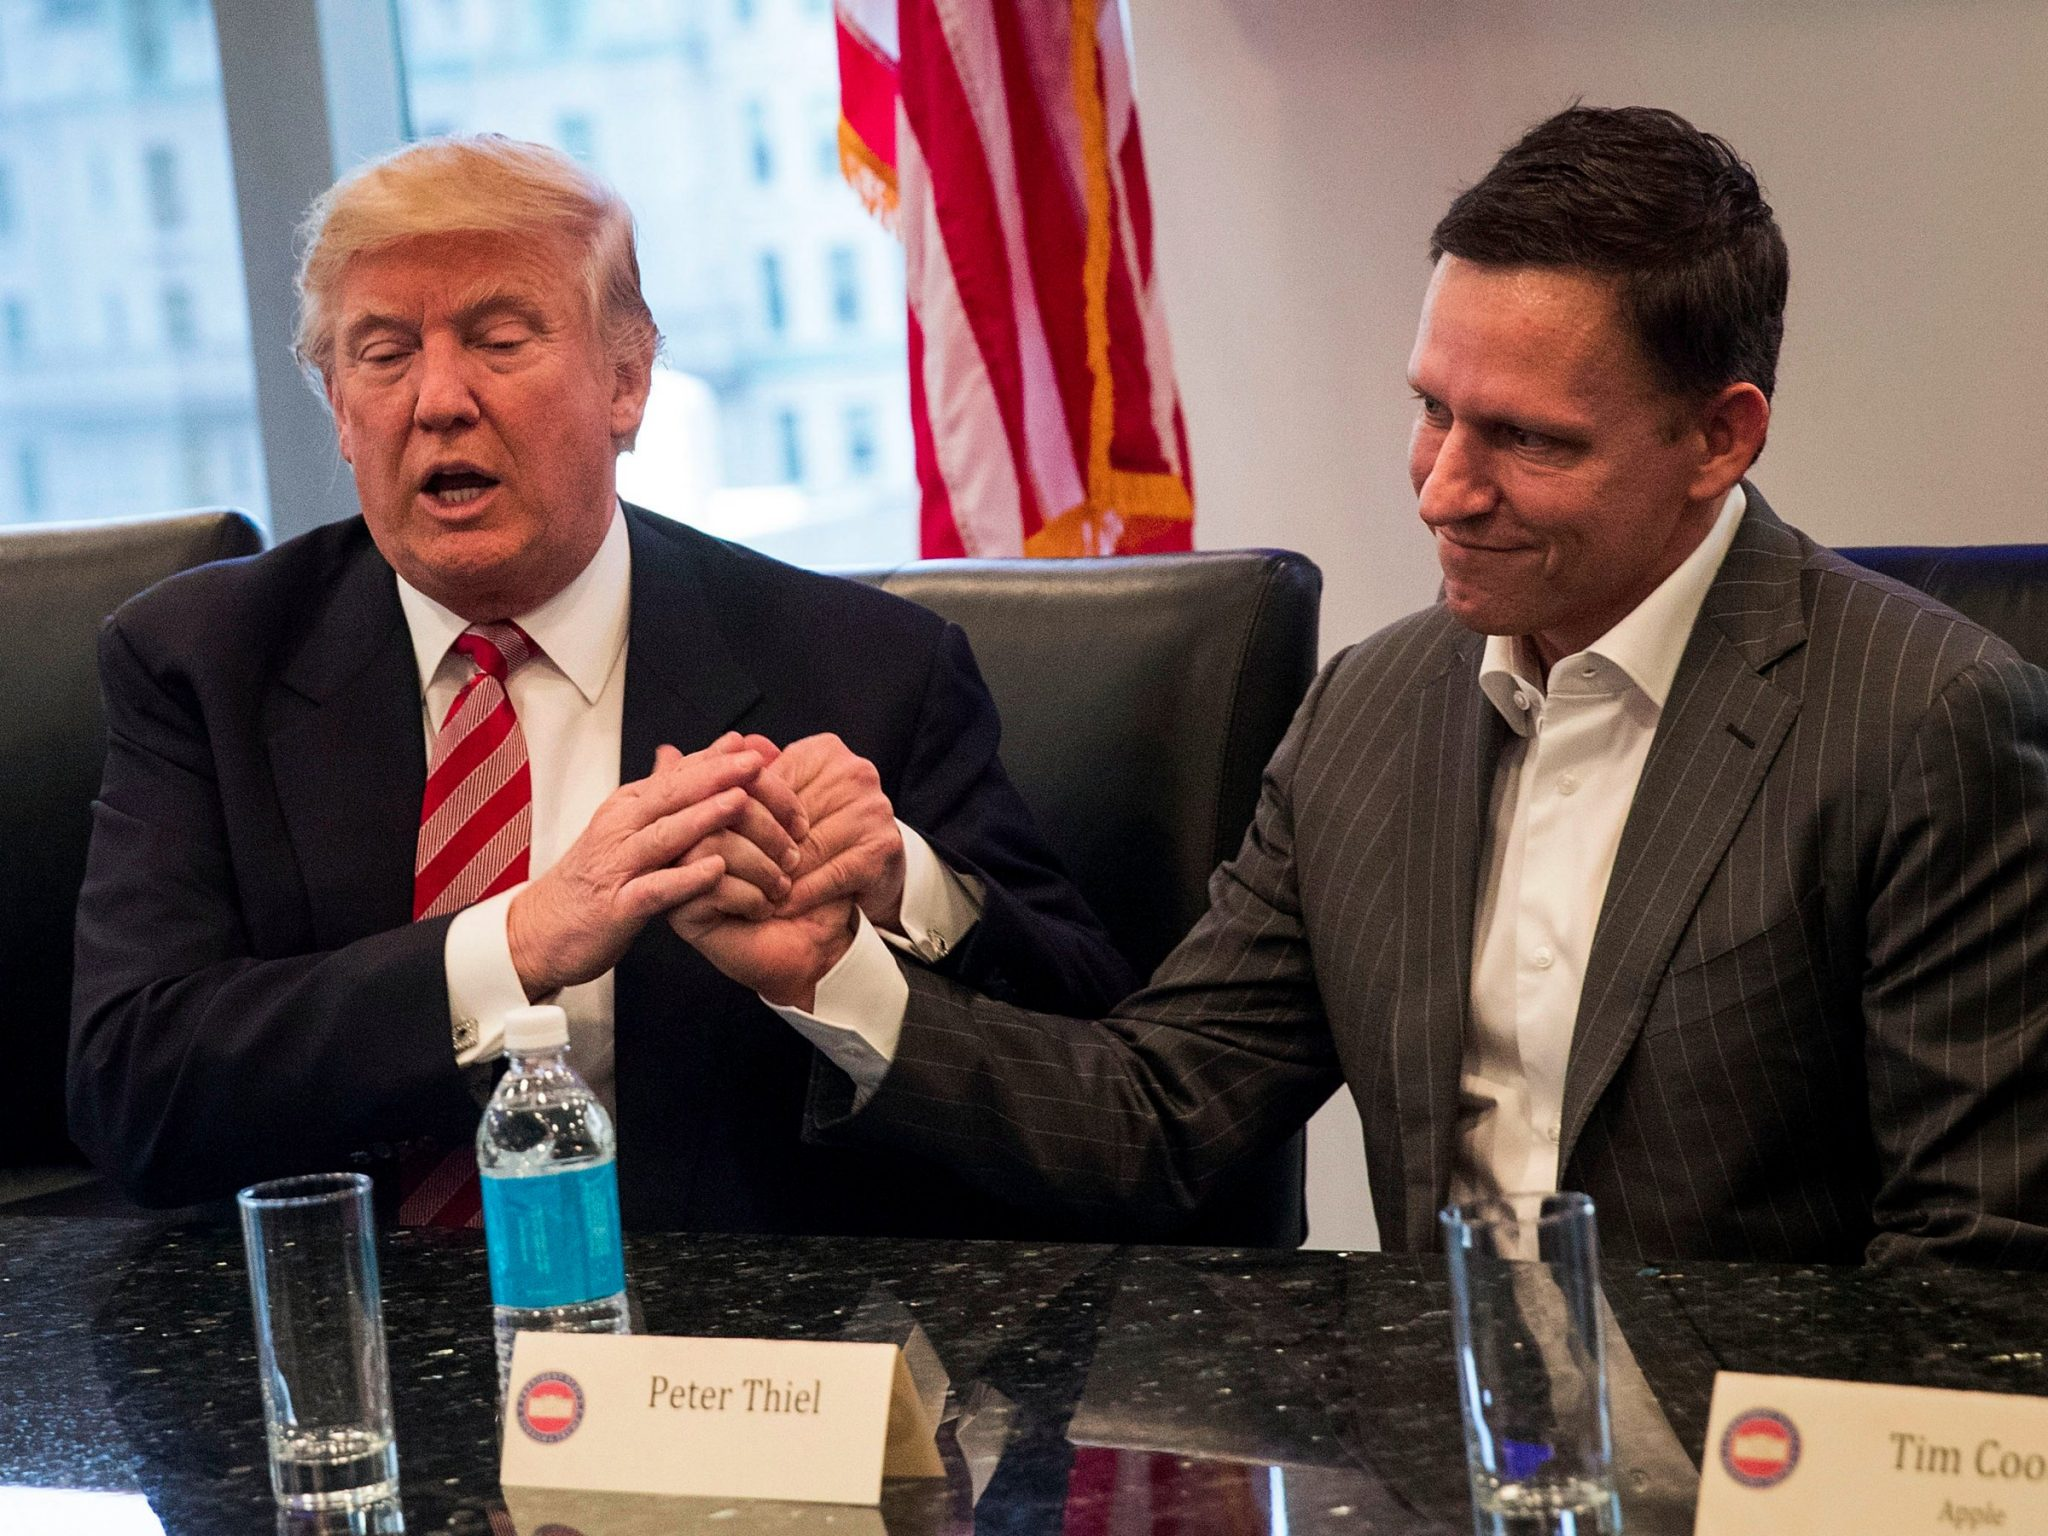 President Trump and Crypto-Neoreactionary Peter Thiel have a secret and private sit-down with Mark Zuckerberg